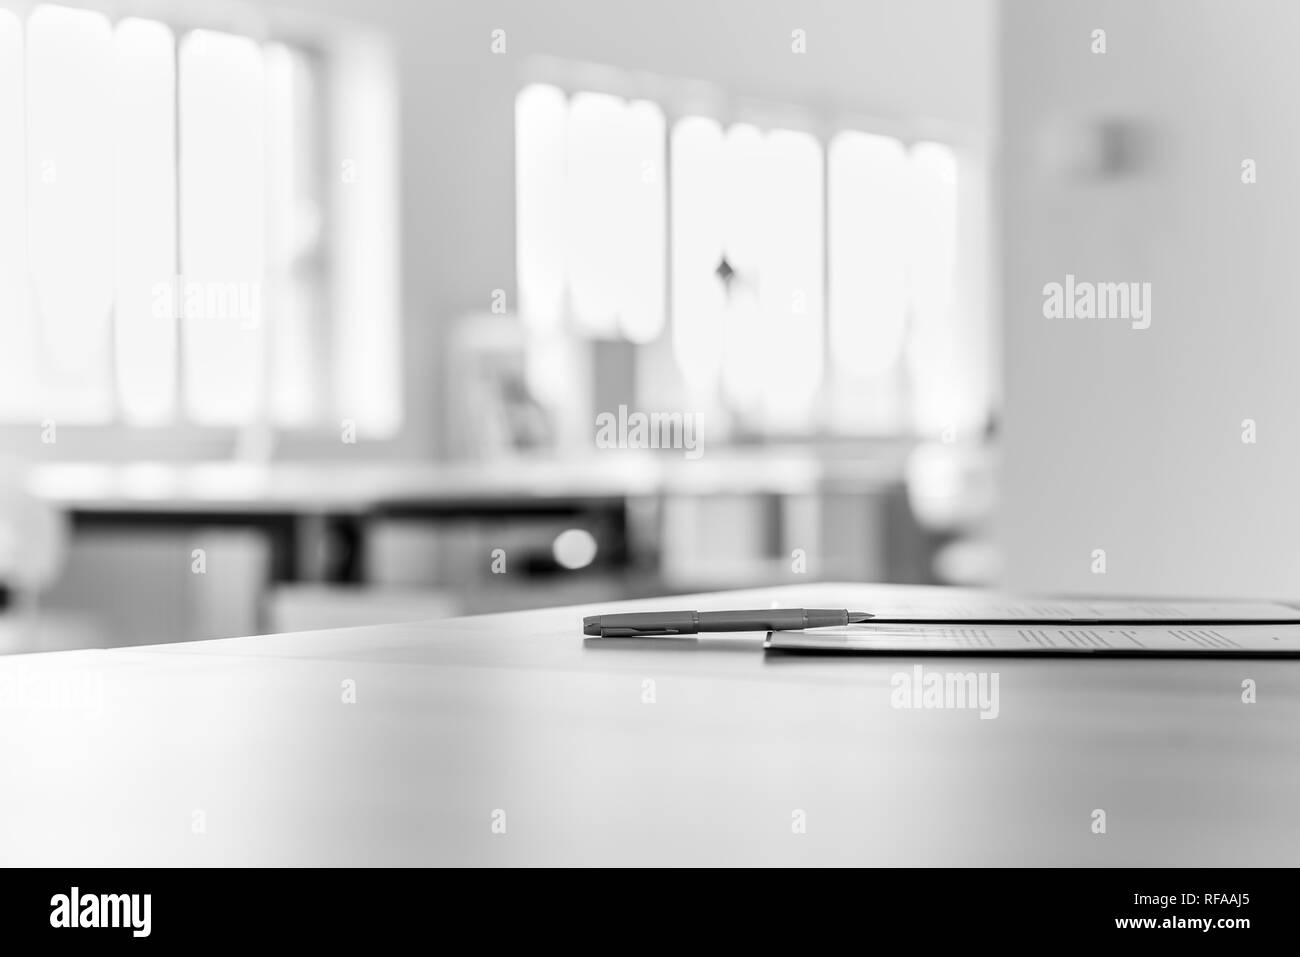 Monochrome image of application form and a pen lying on office desk. Stock Photo